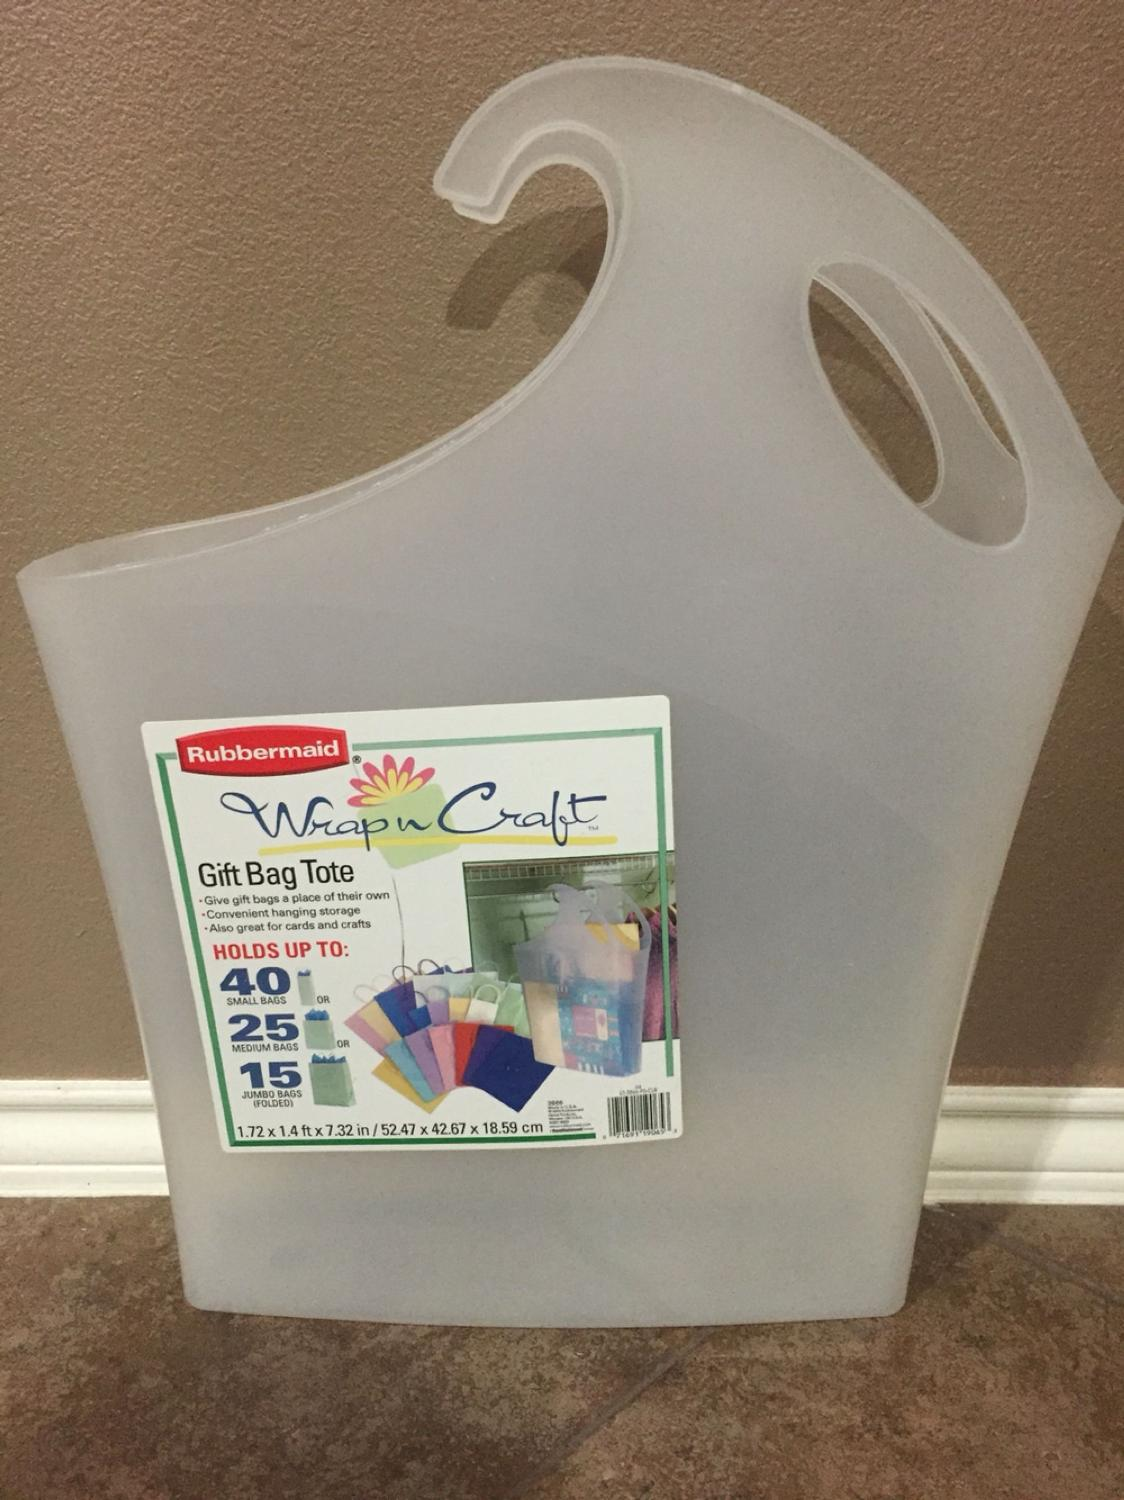 Find More Rubbermaid Wrap N Craft Gift Bag Tote For Sale